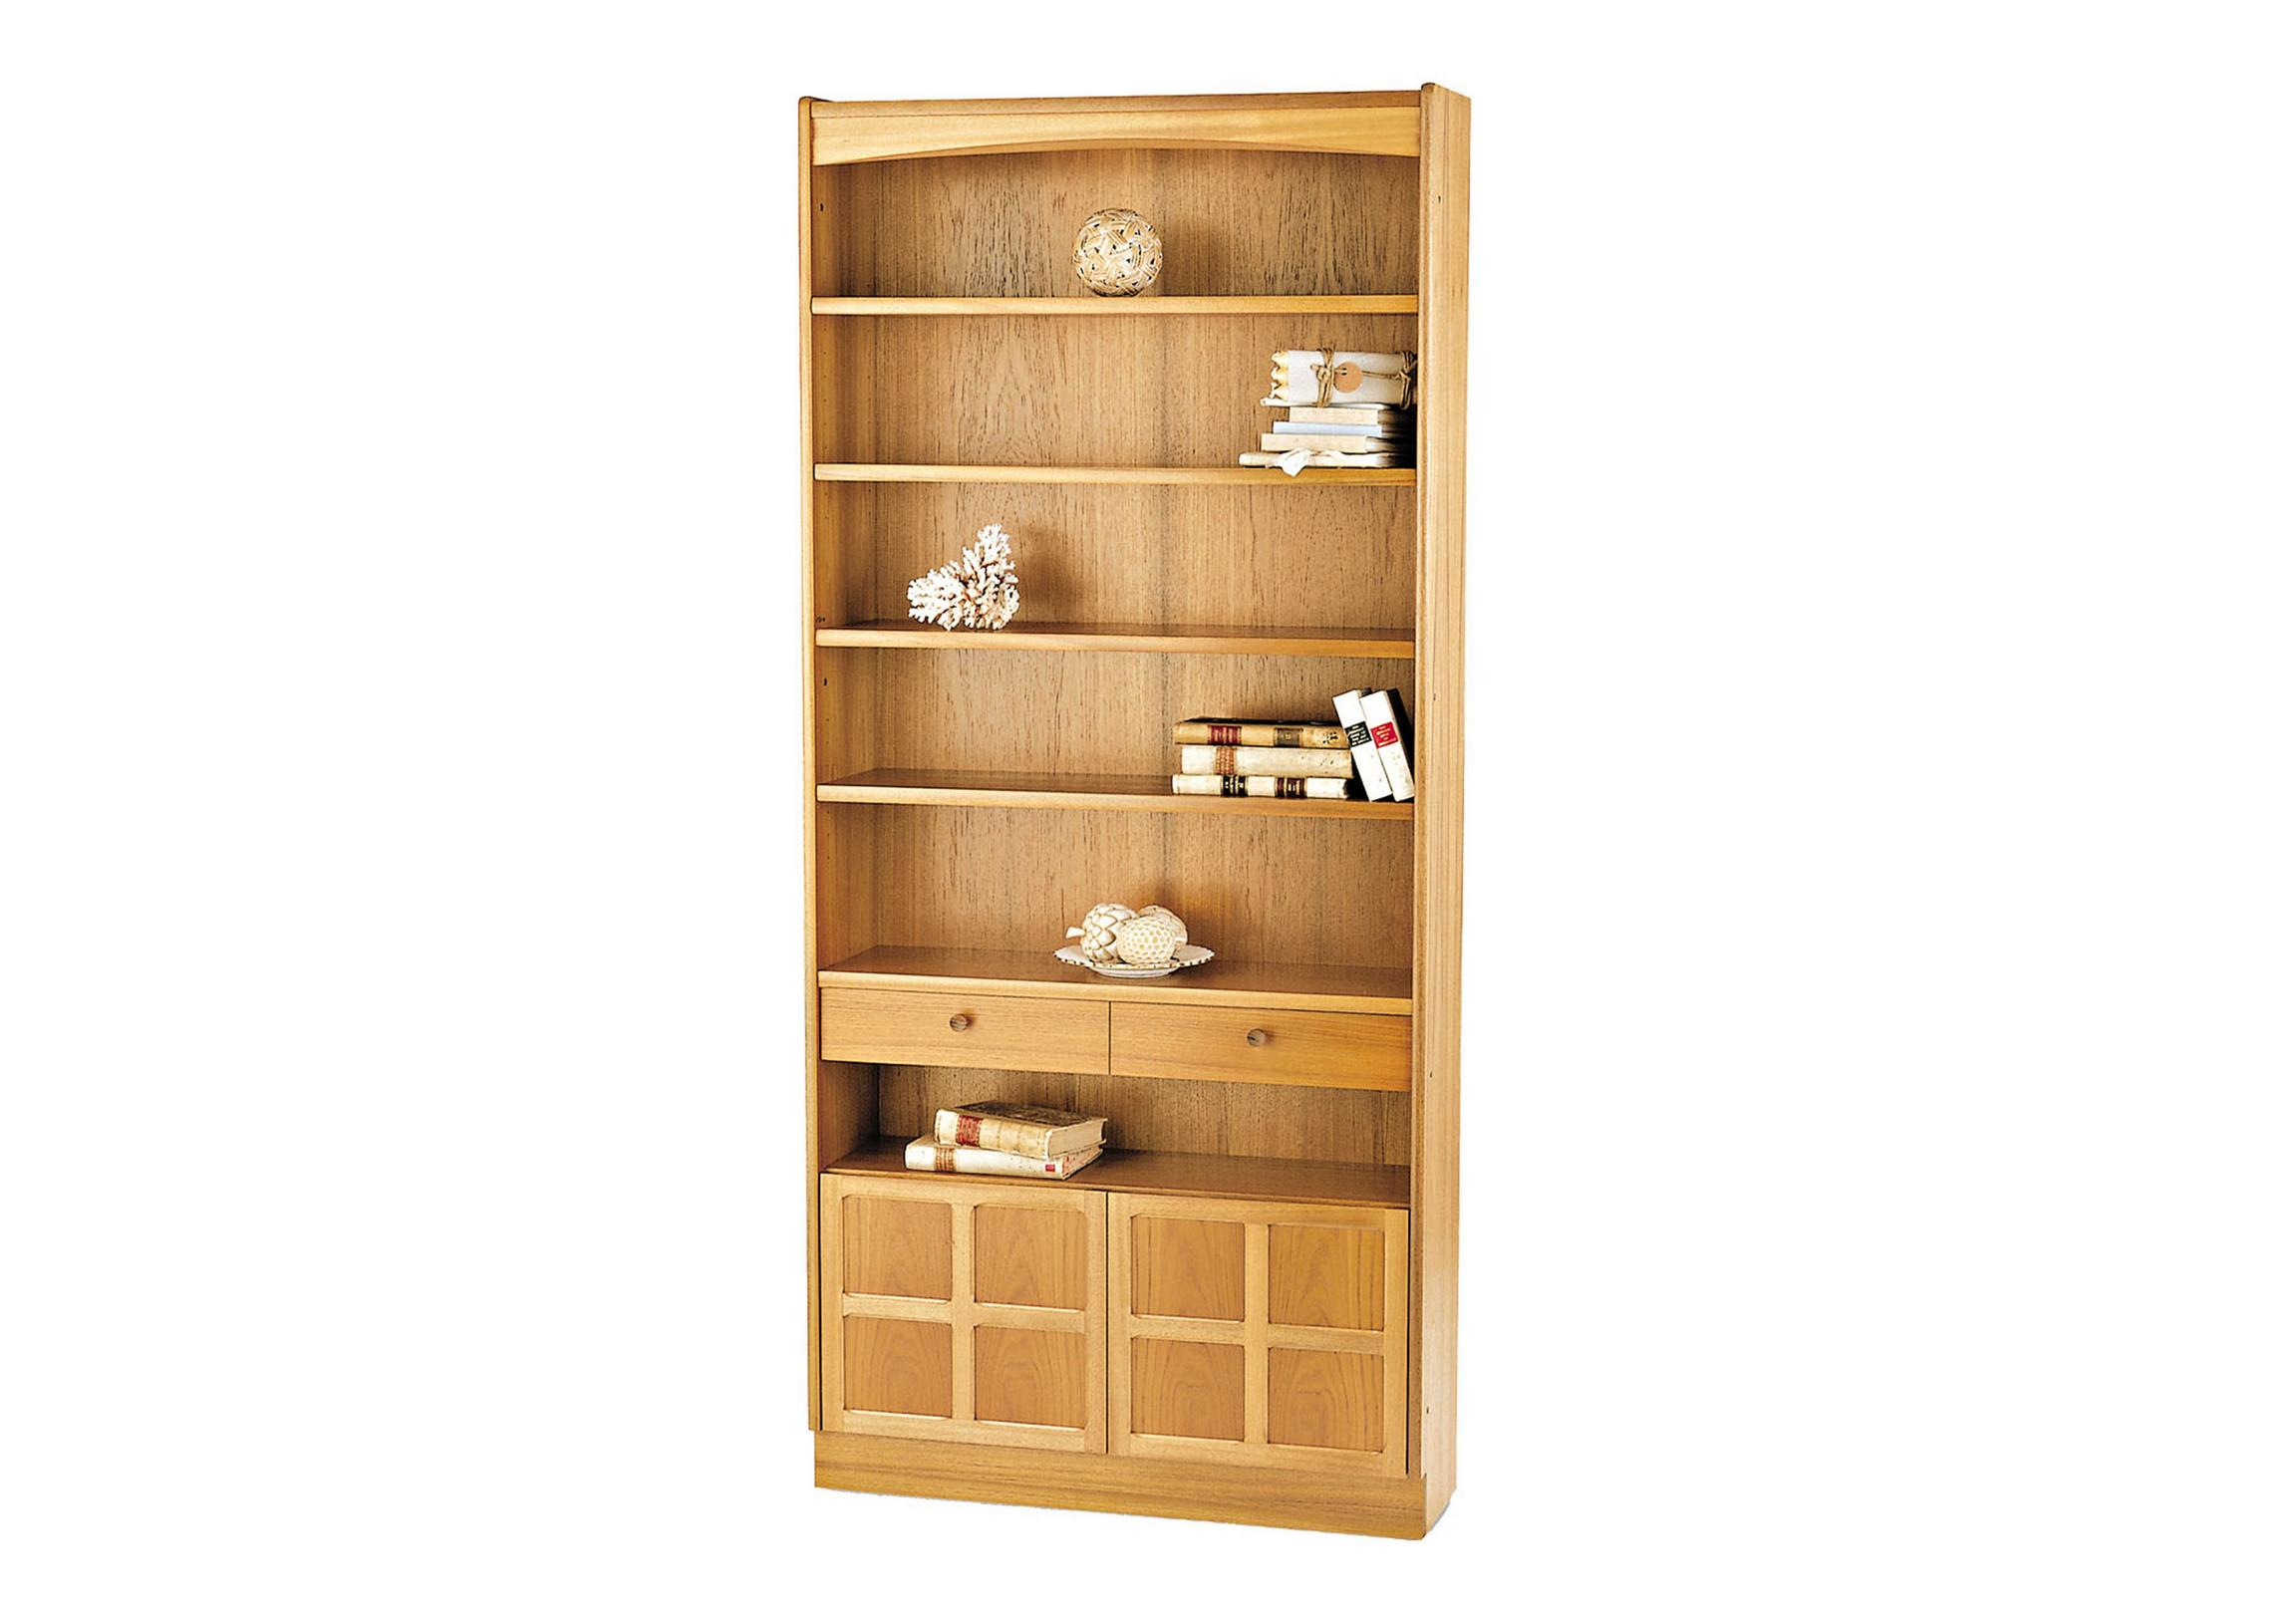 Classic tall bookcase with doors loading images